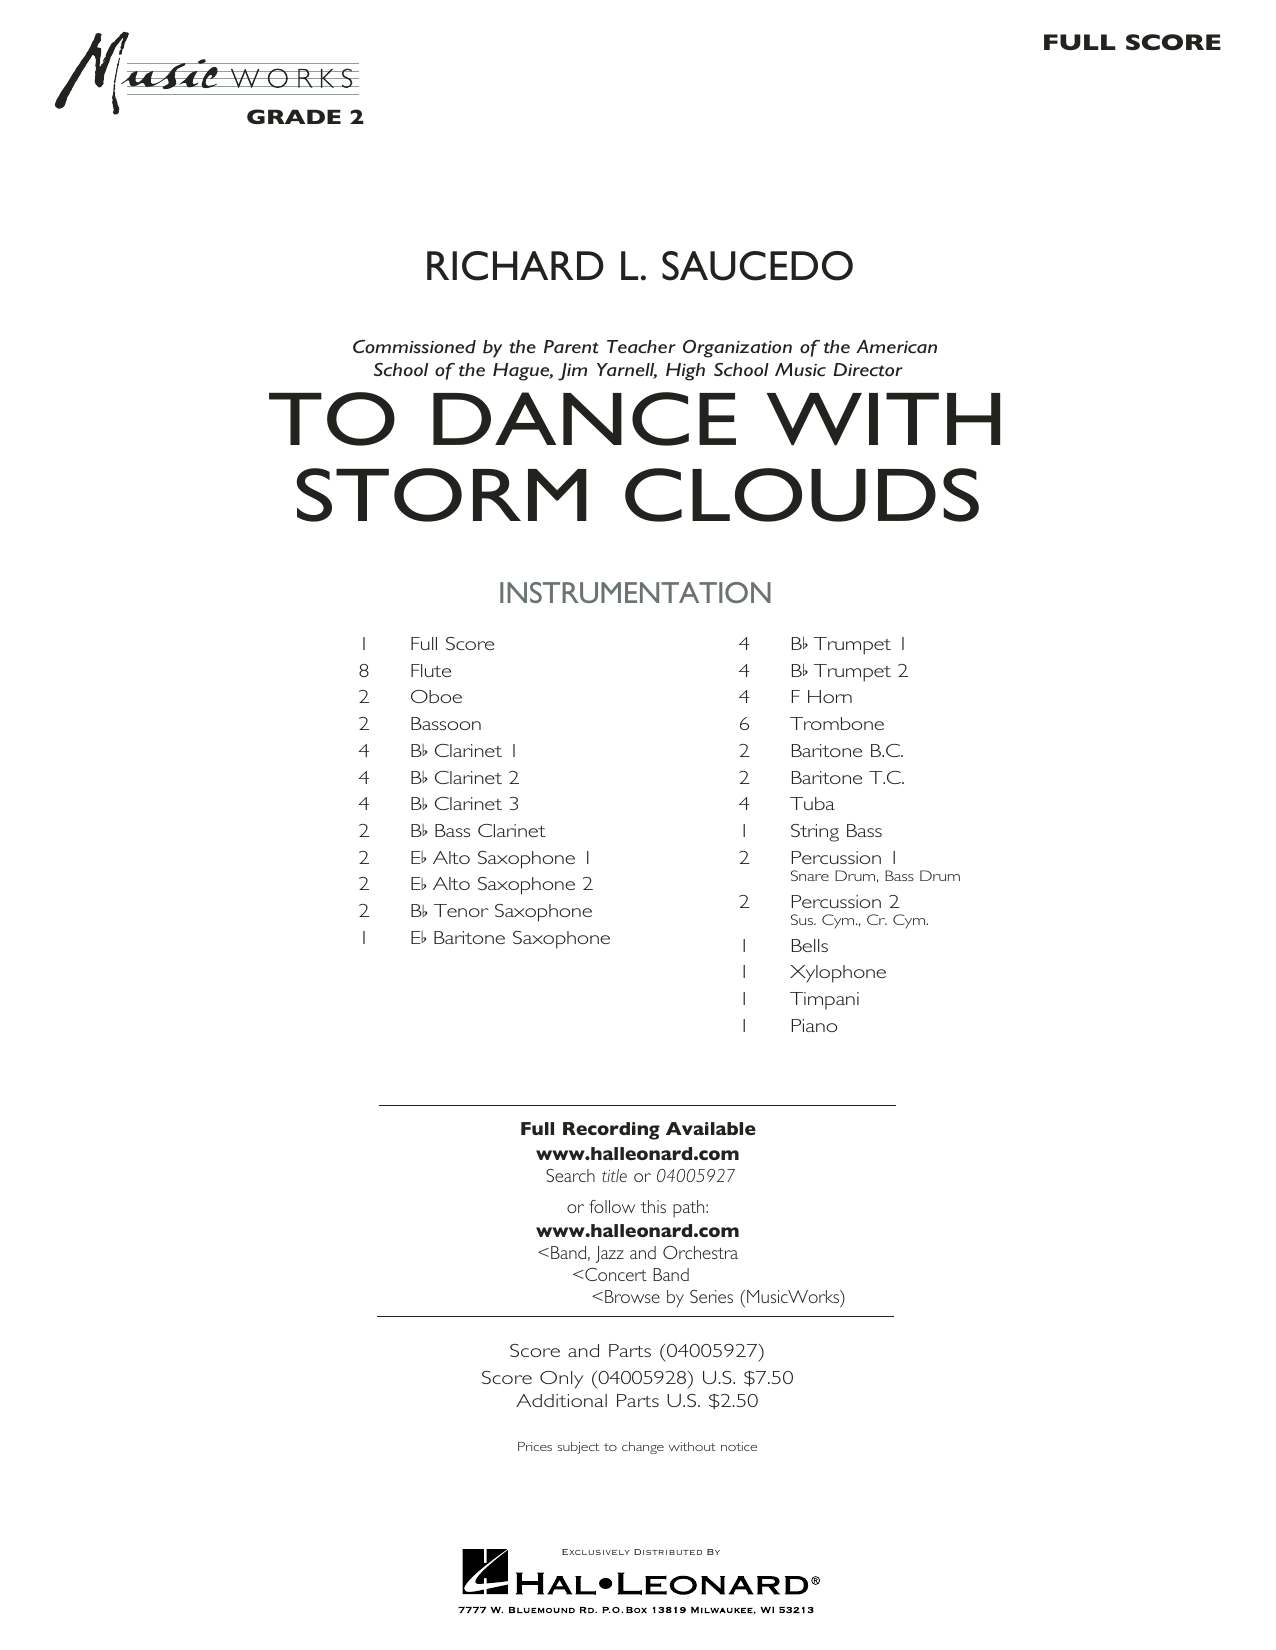 To Dance with Storm Clouds - Full Score (Concert Band)